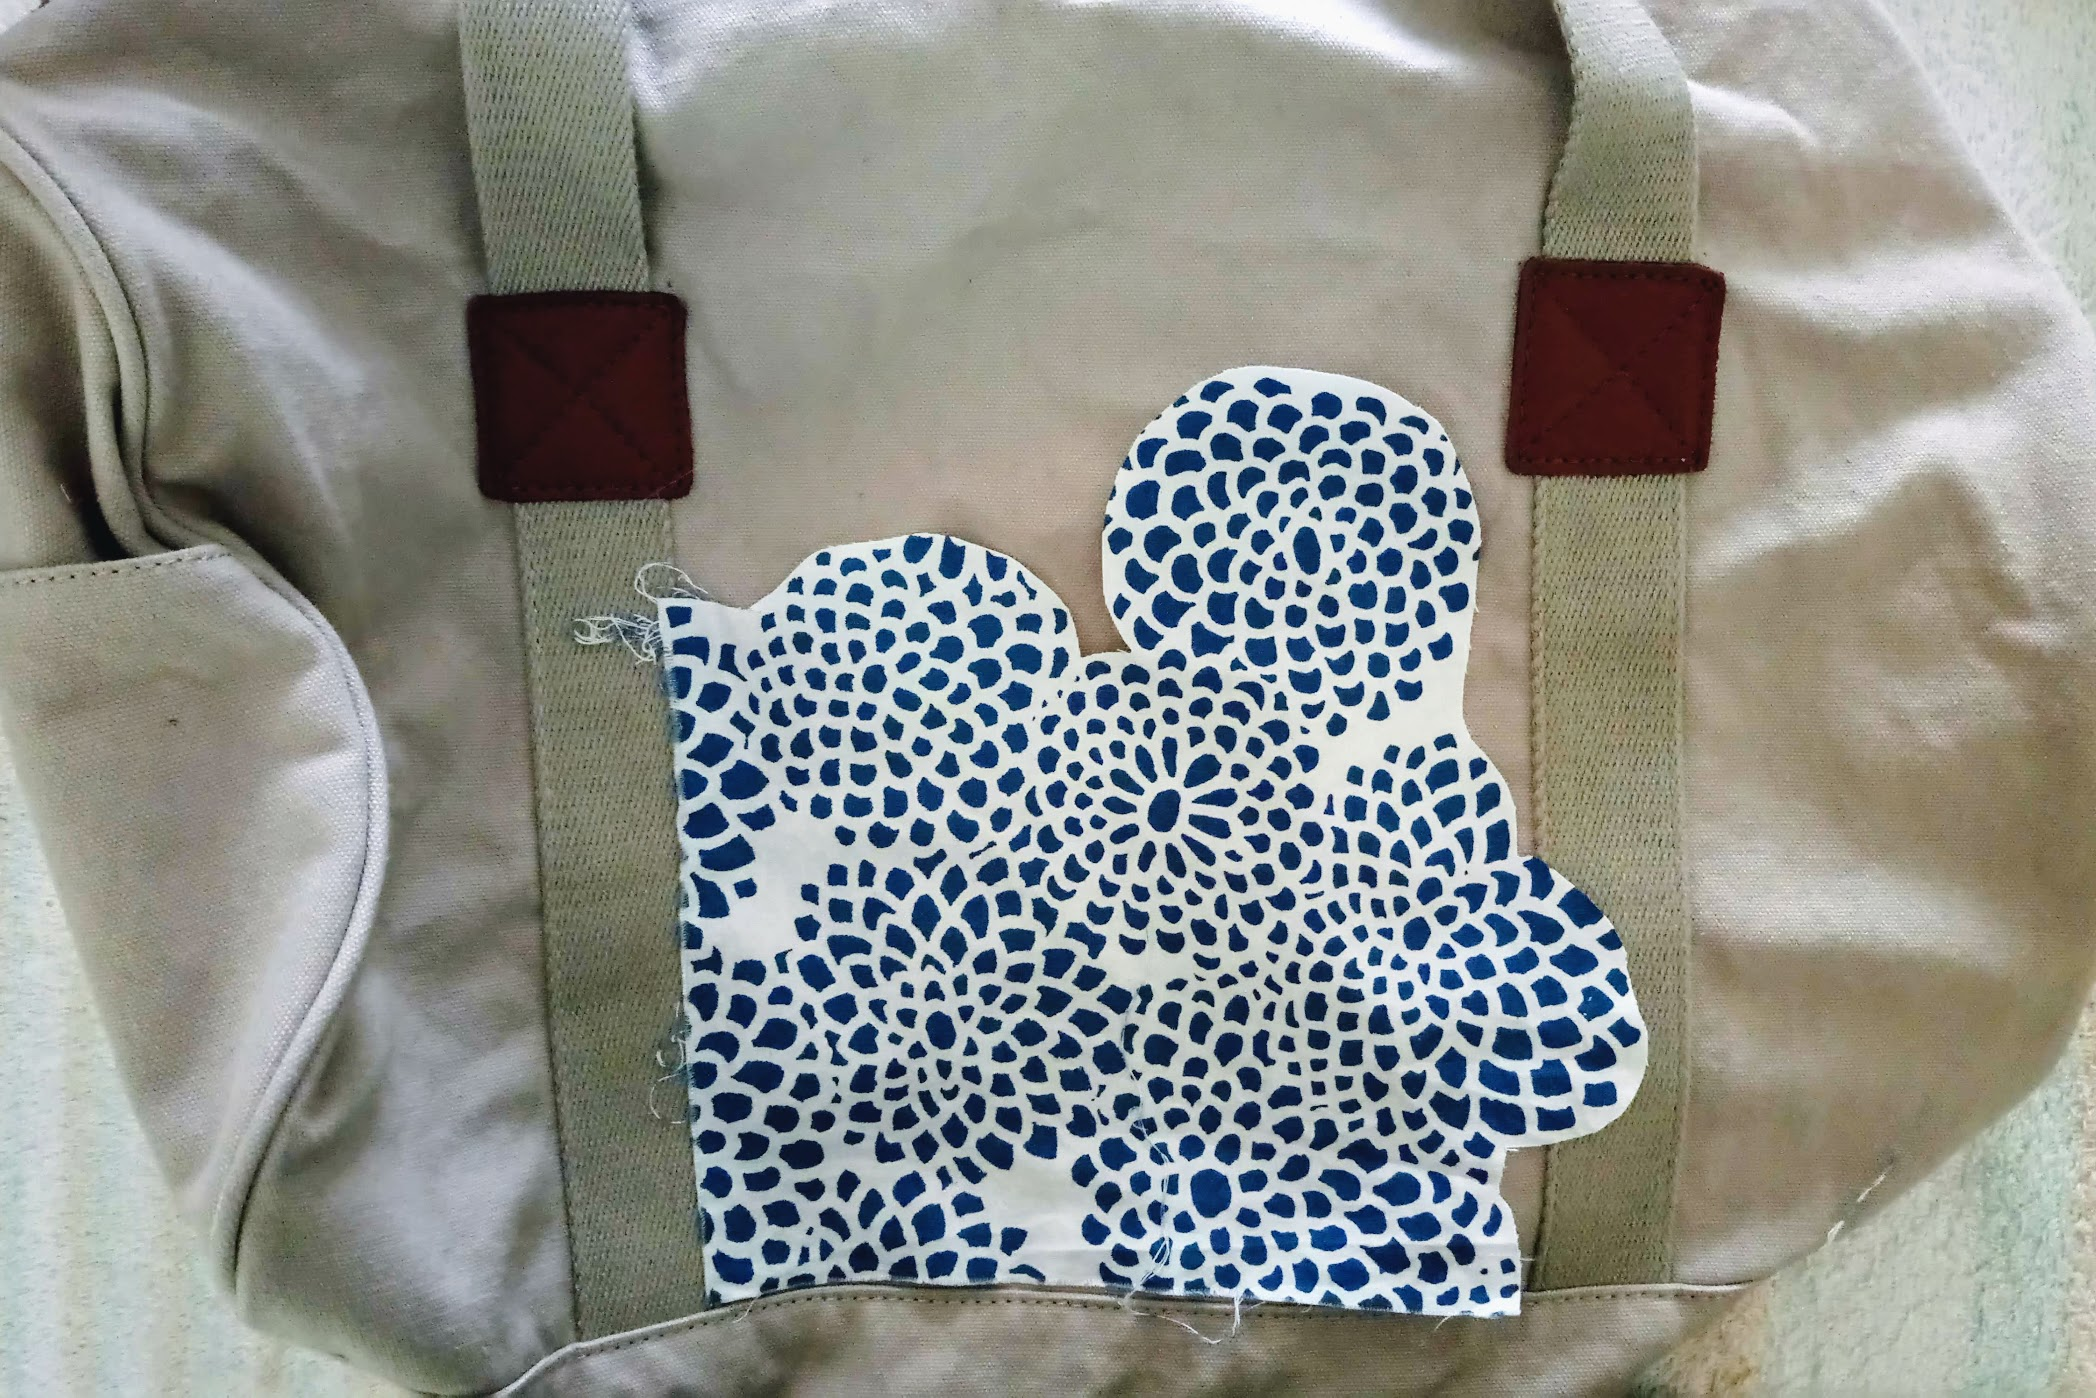 In-Progress: Duffel Bag Personalization with Fabric Appliqués - DIY Fashion Accessories